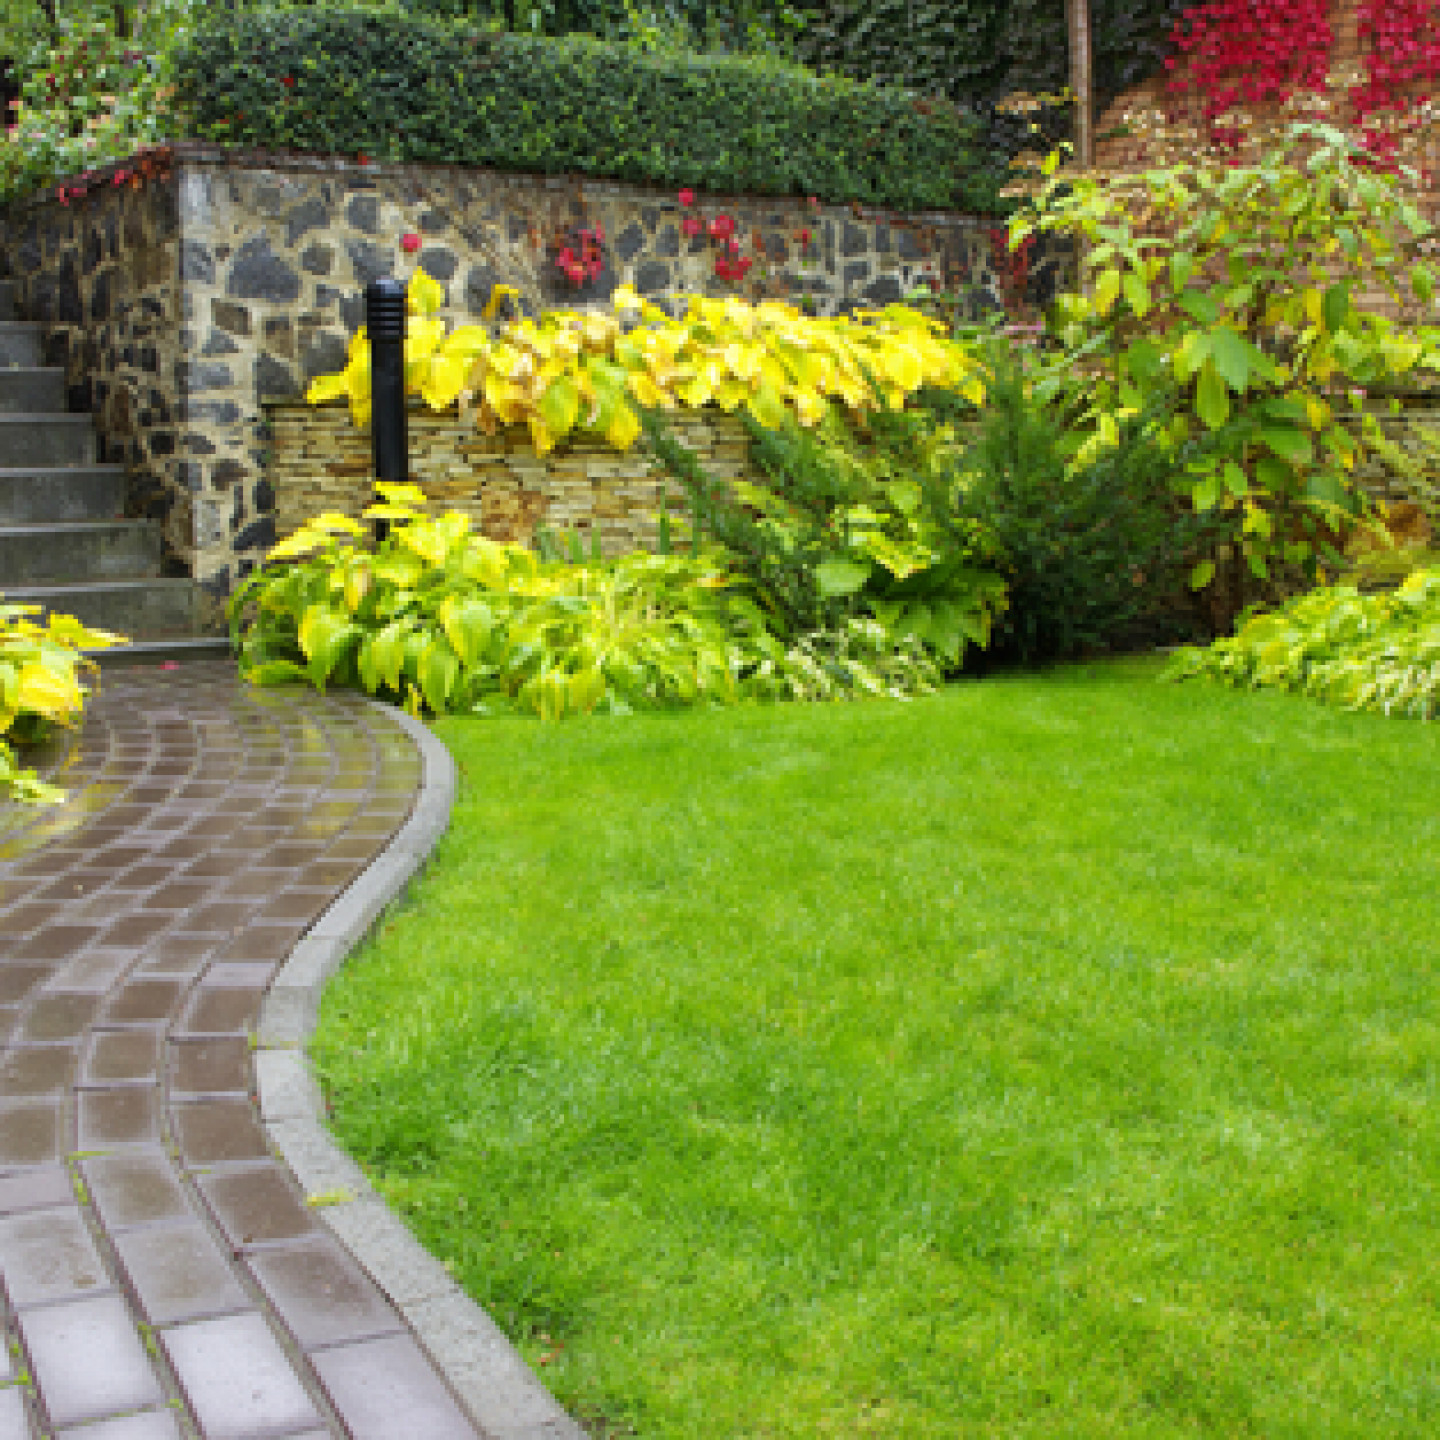 Top 3 reasons to give your landscape a redo